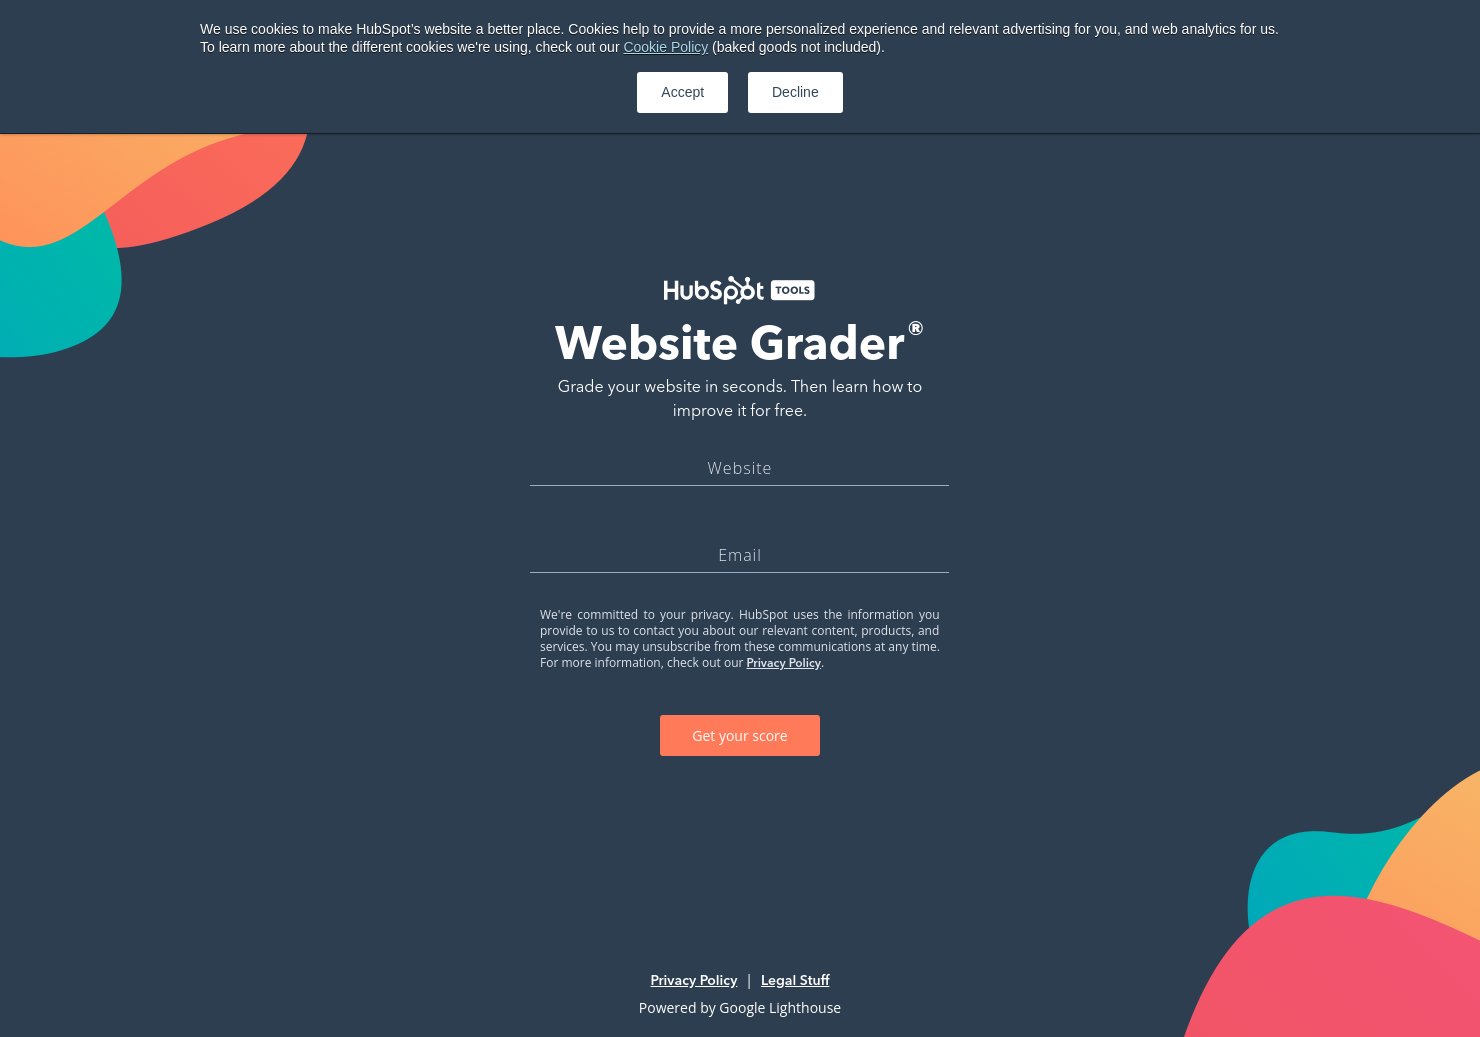 The New Website Grader